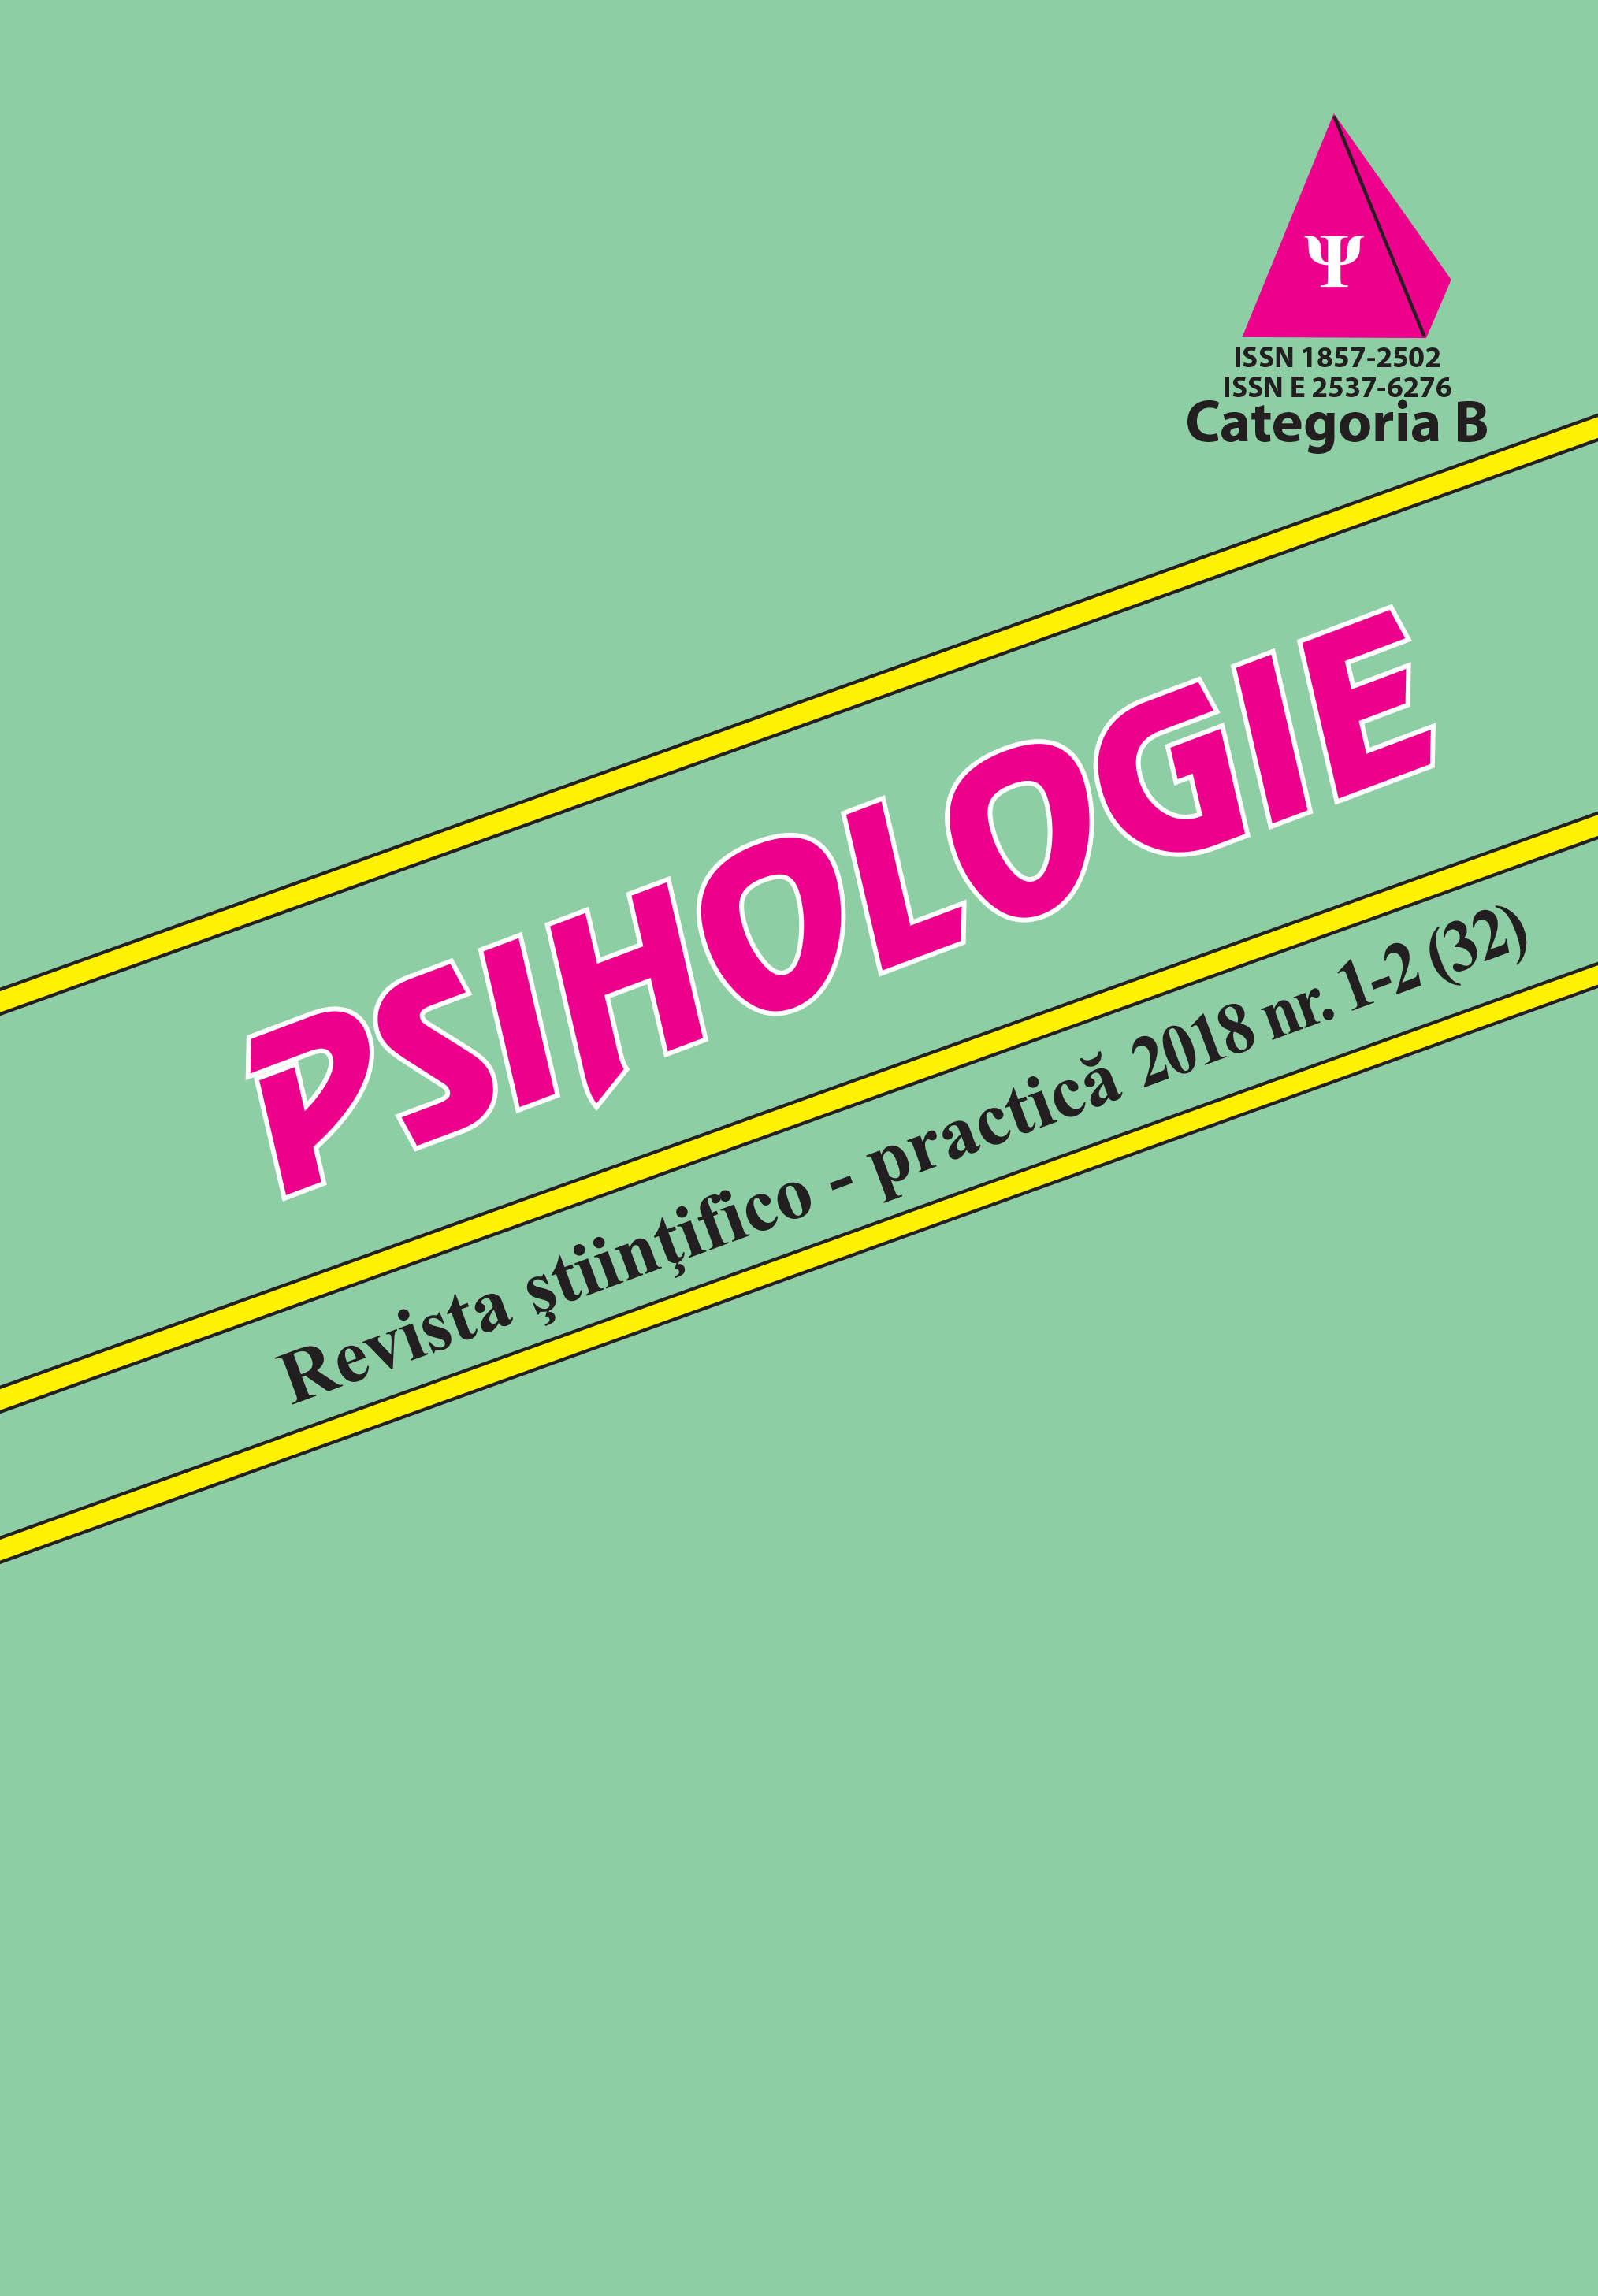 Psychology, the Scientific-practical journal Cover Image